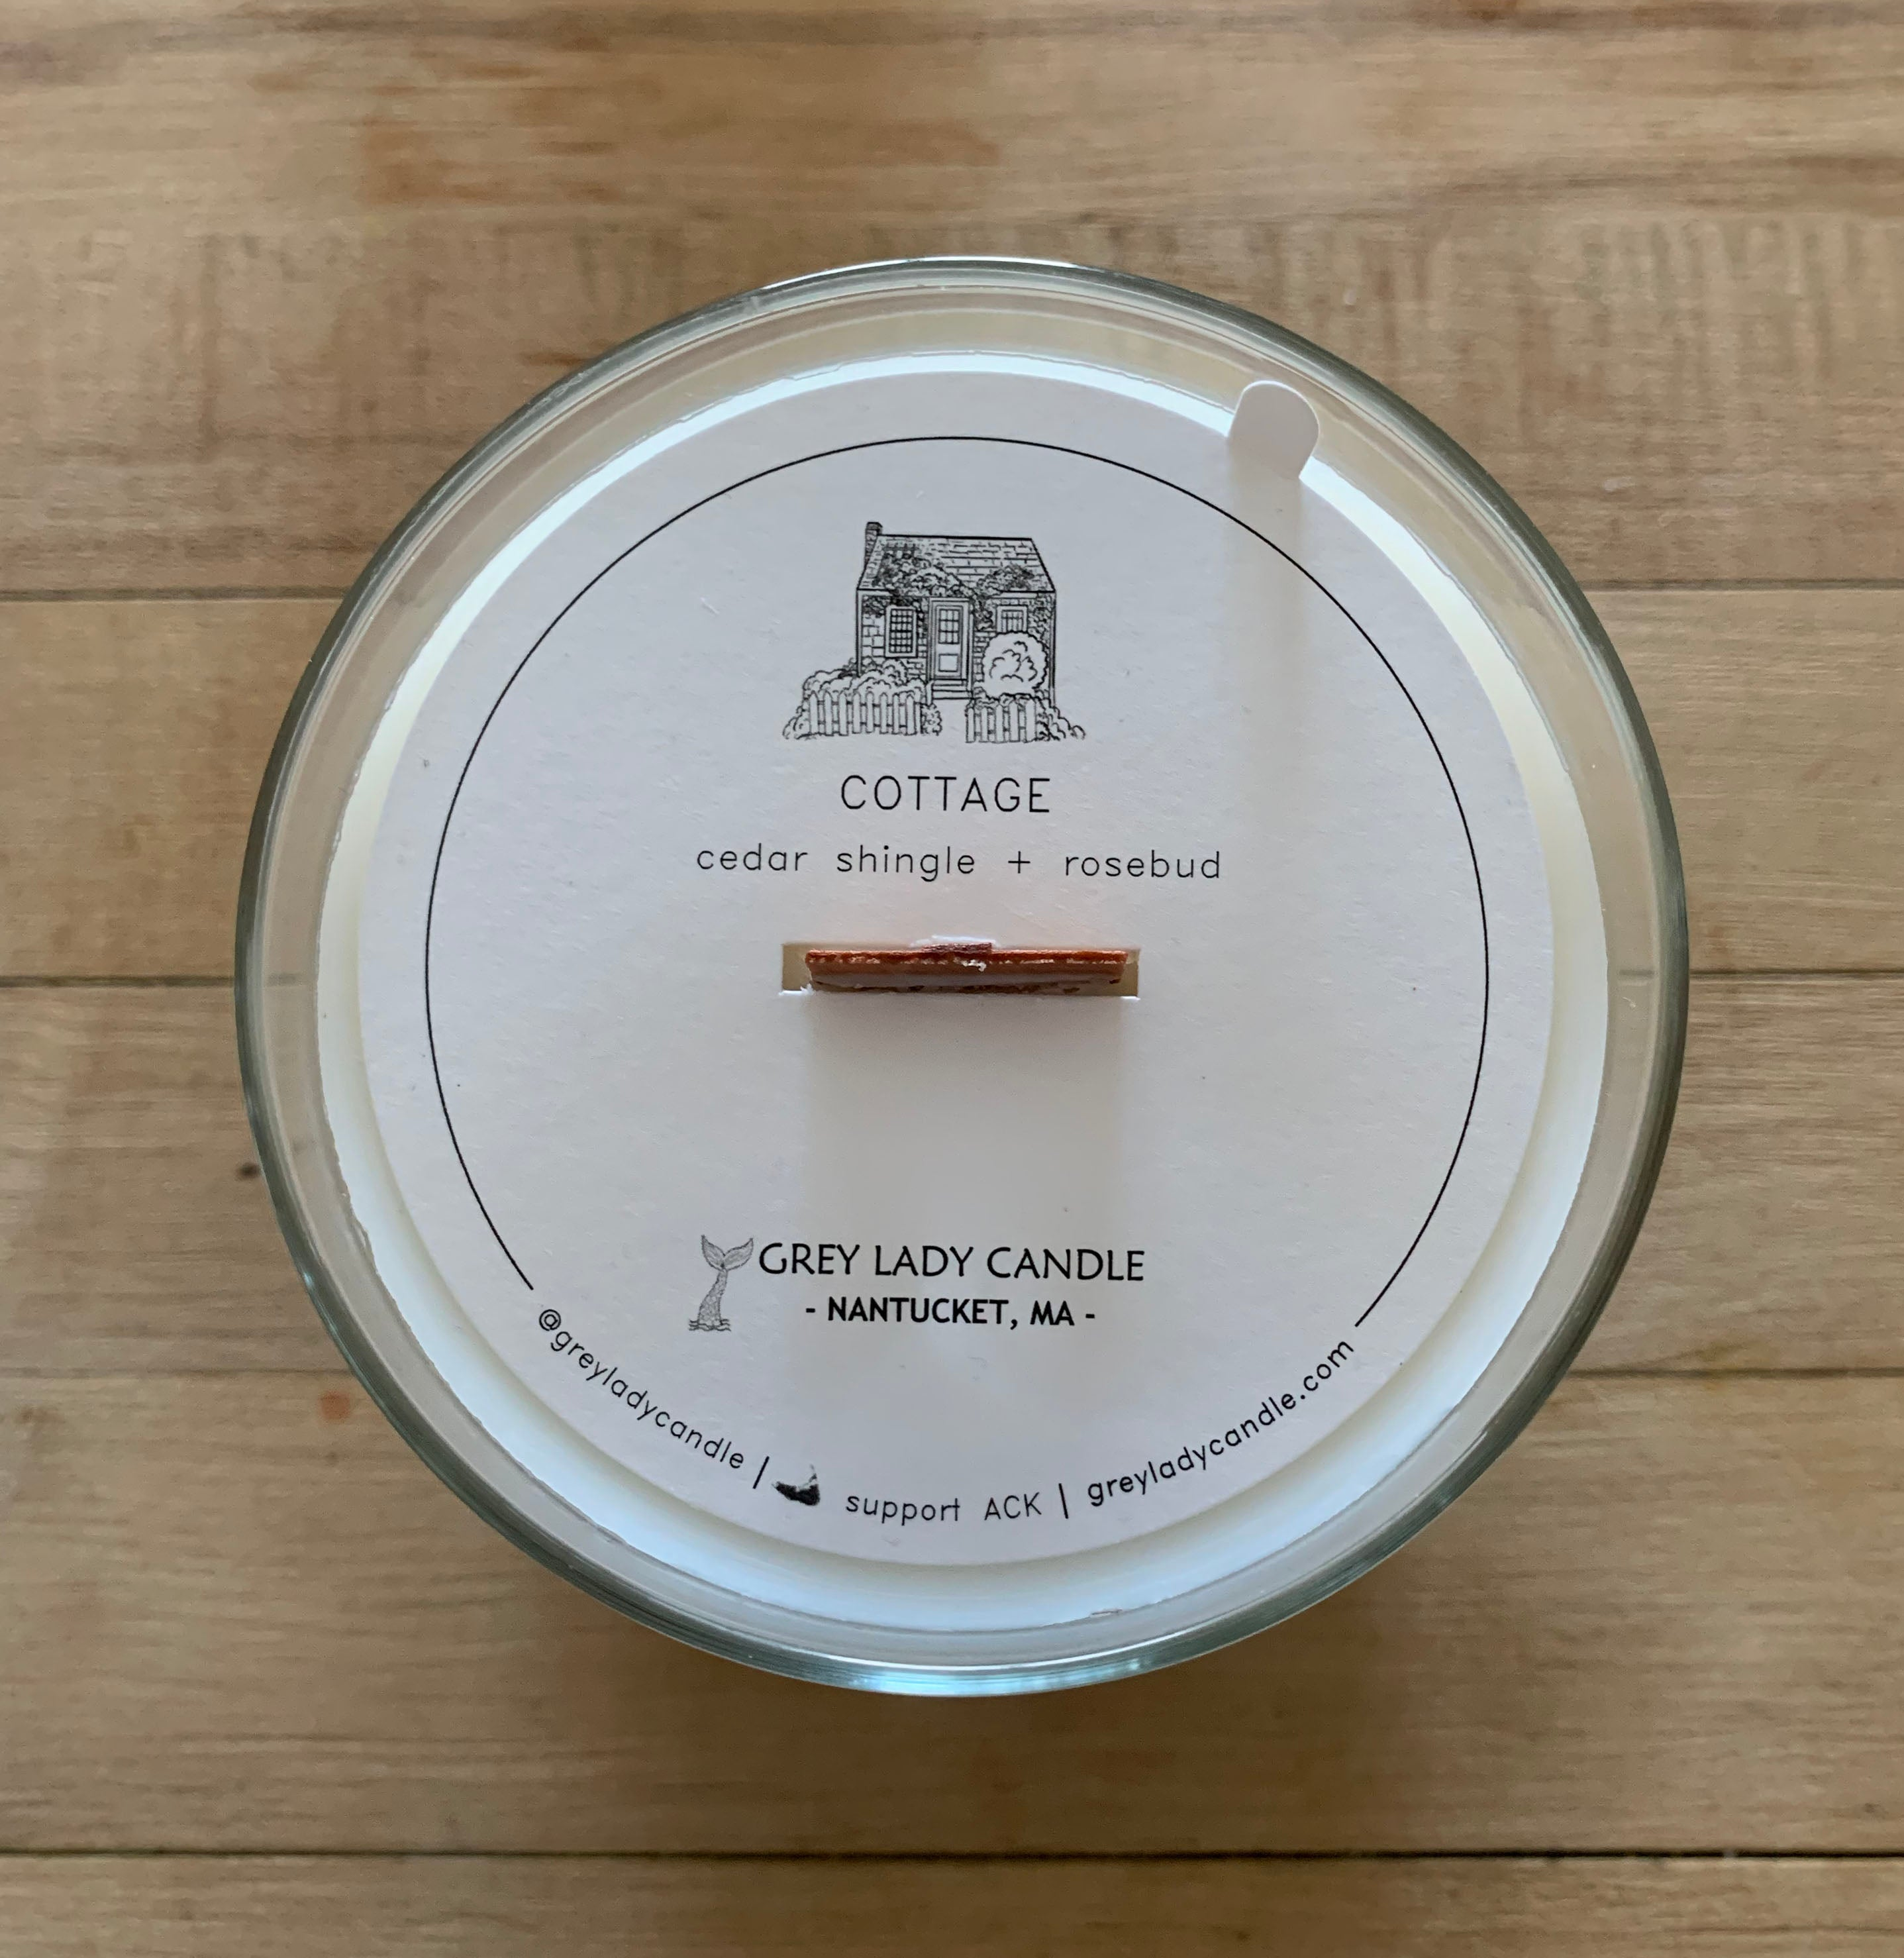 Cottage Topper - Nantucket MA, Grey Lady Candle